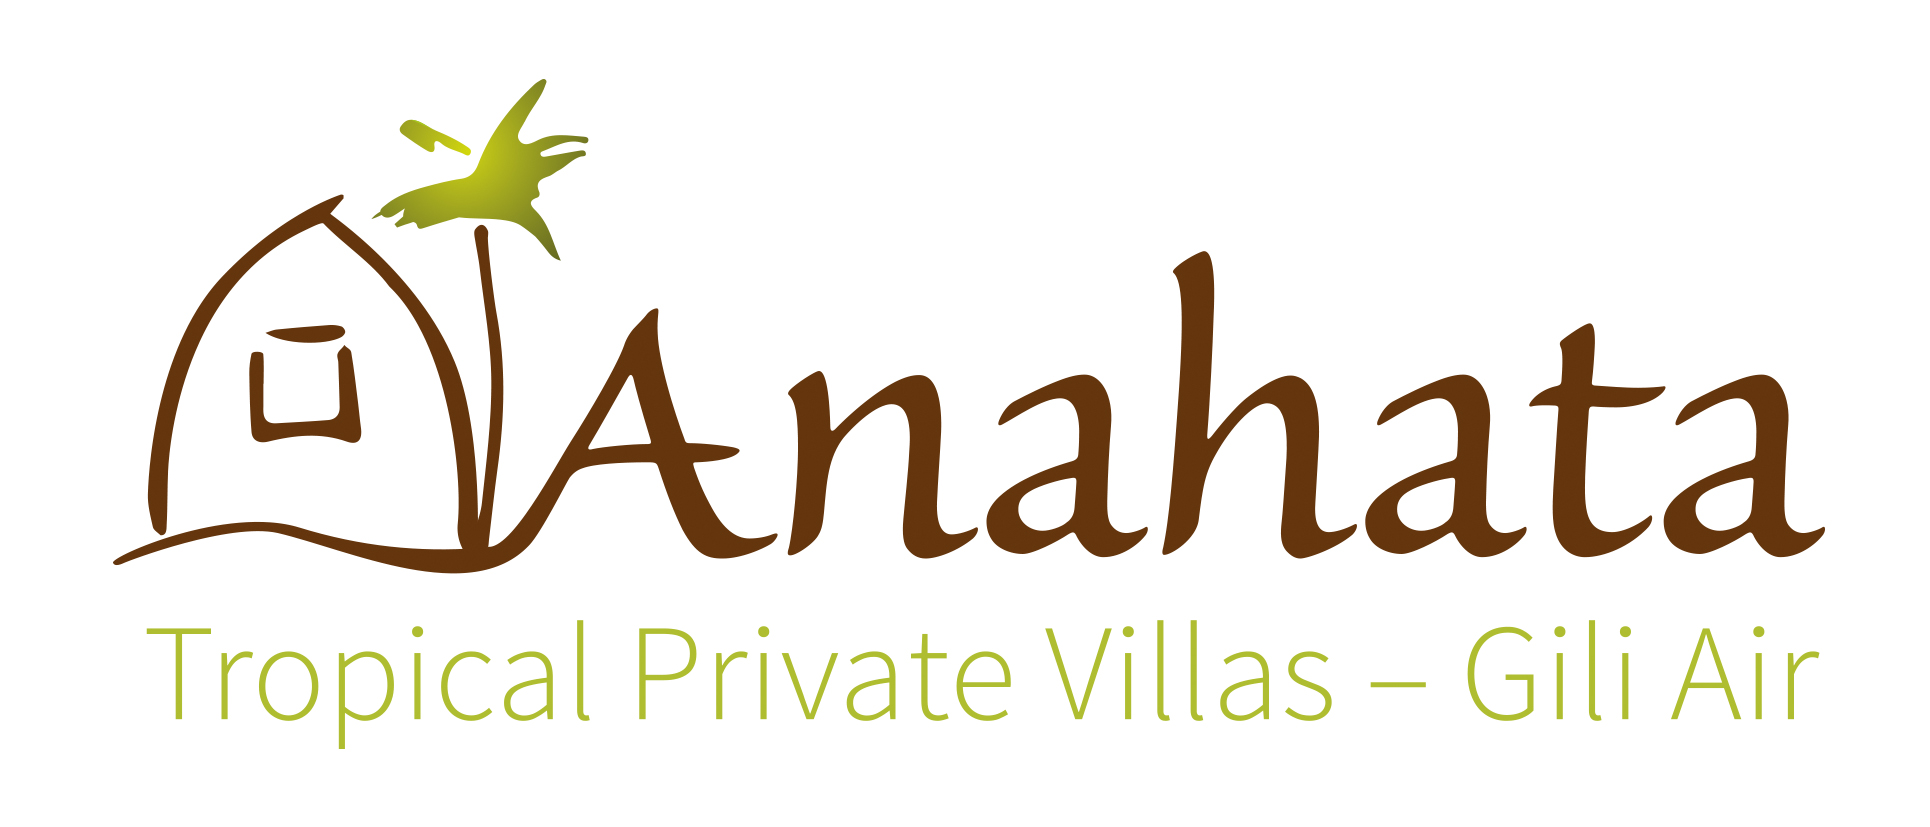 Anahata - Tropical Private Villas - Gili Air